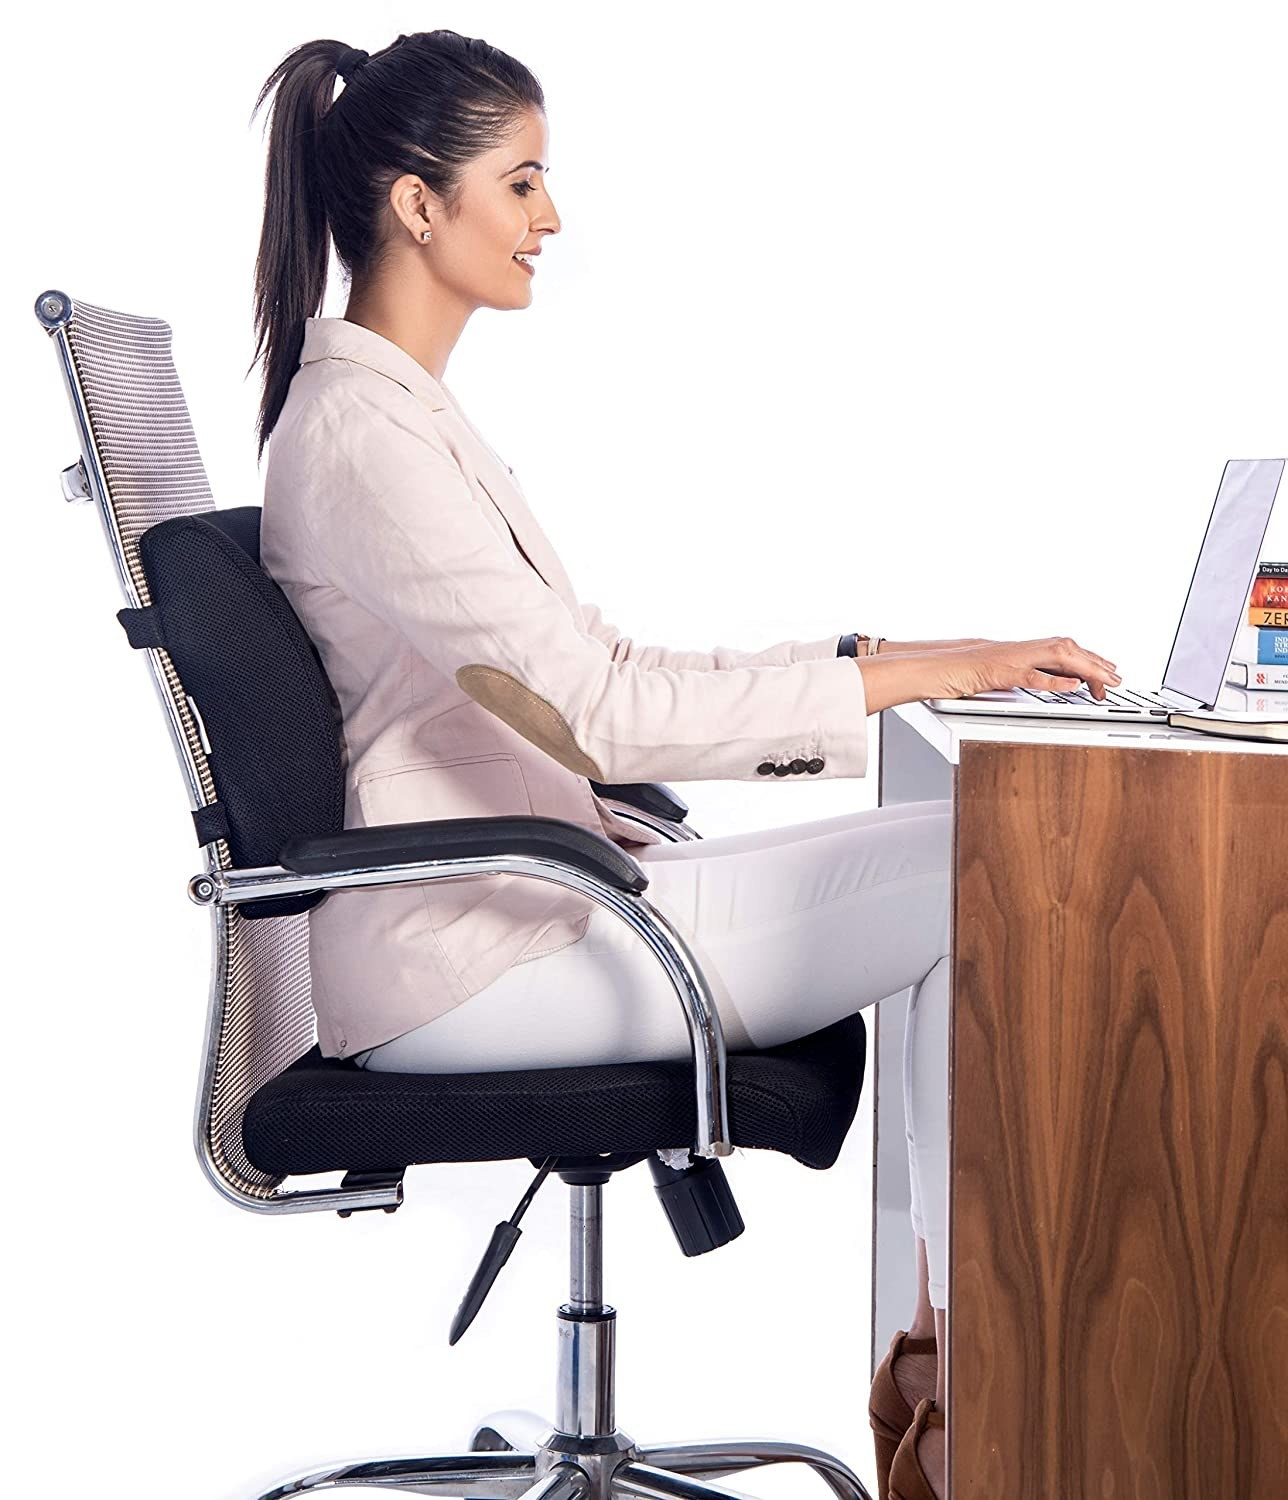 A woman sitting on a chair with back support from the pillow